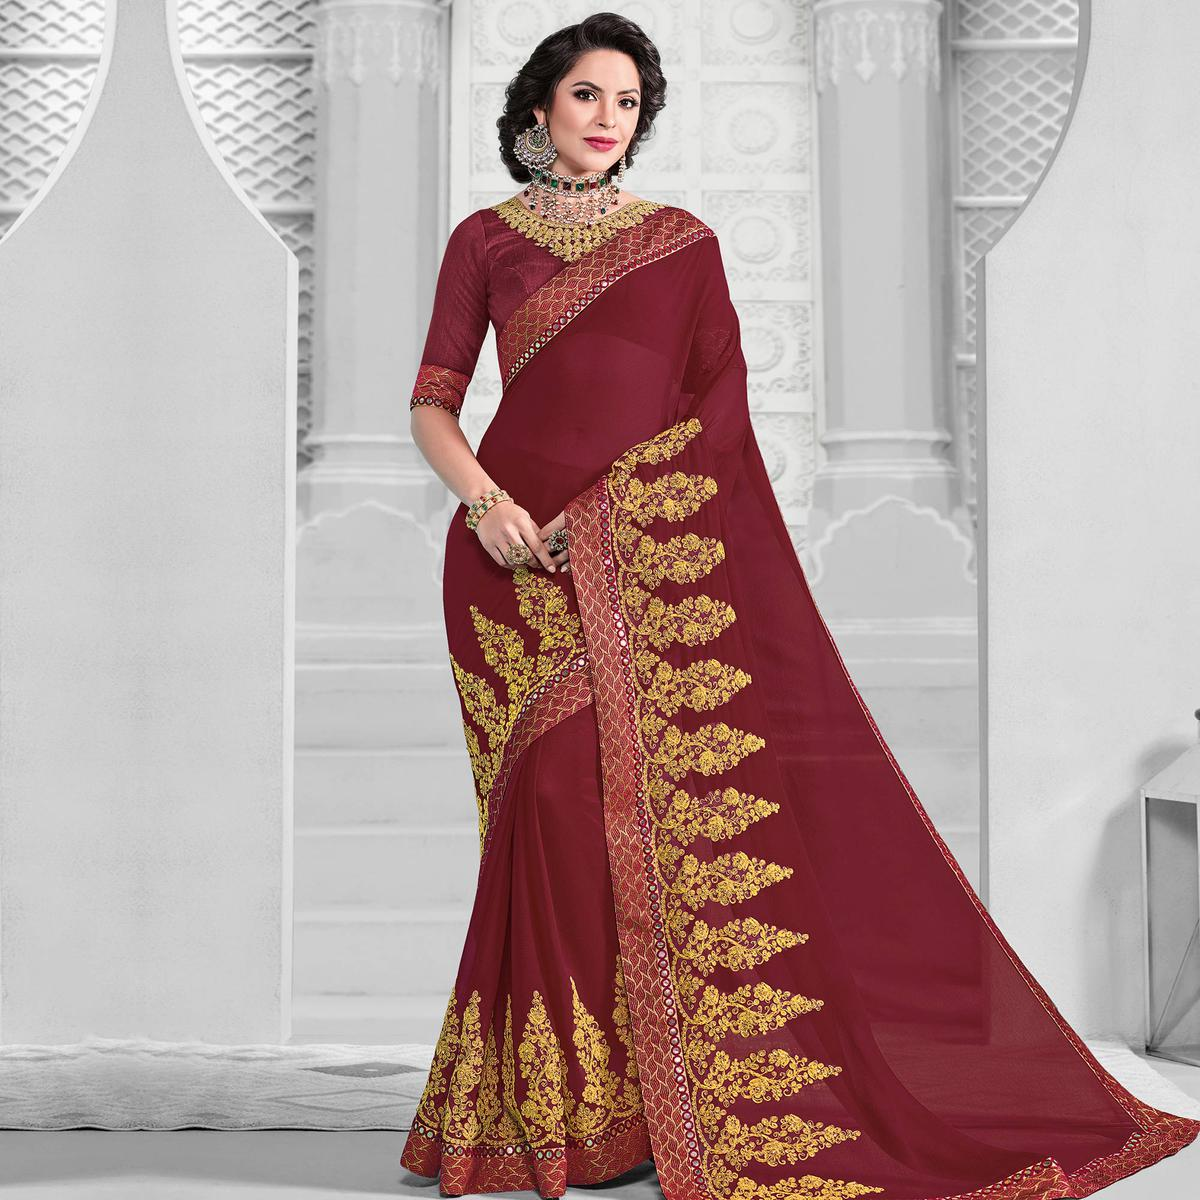 Energetic Maroon Colored Designer Embroidered Partywear Marble Chiffon Saree